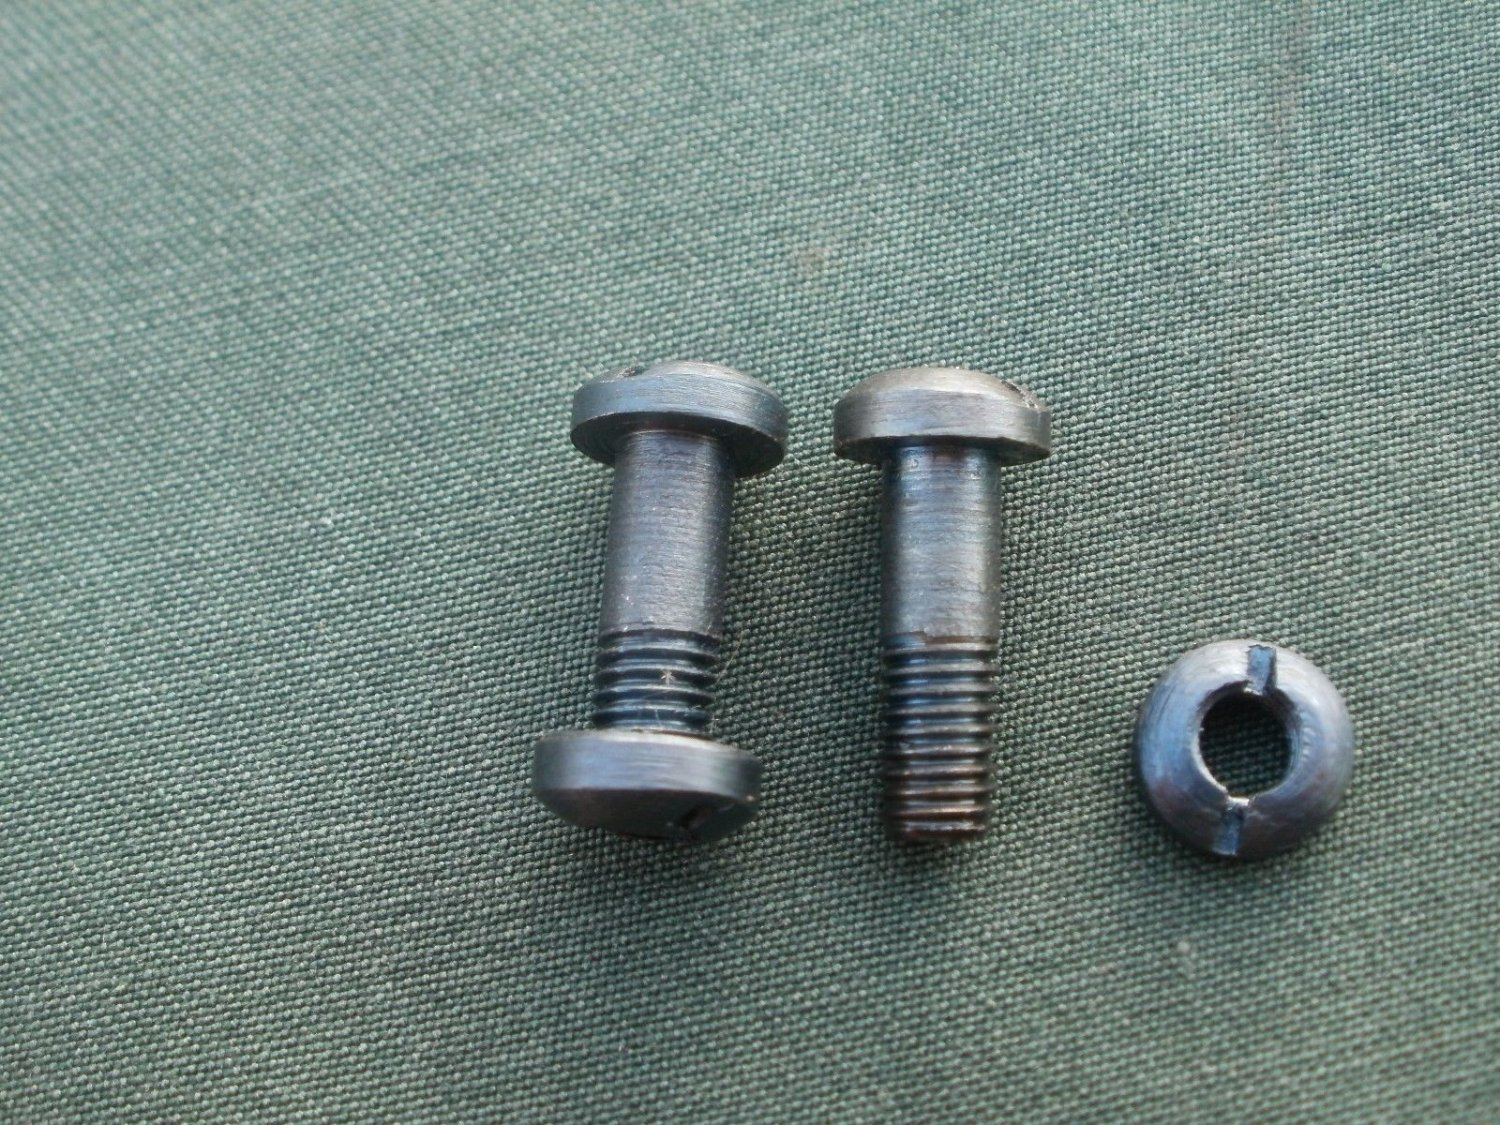 WW2 SVT-40  grip screws